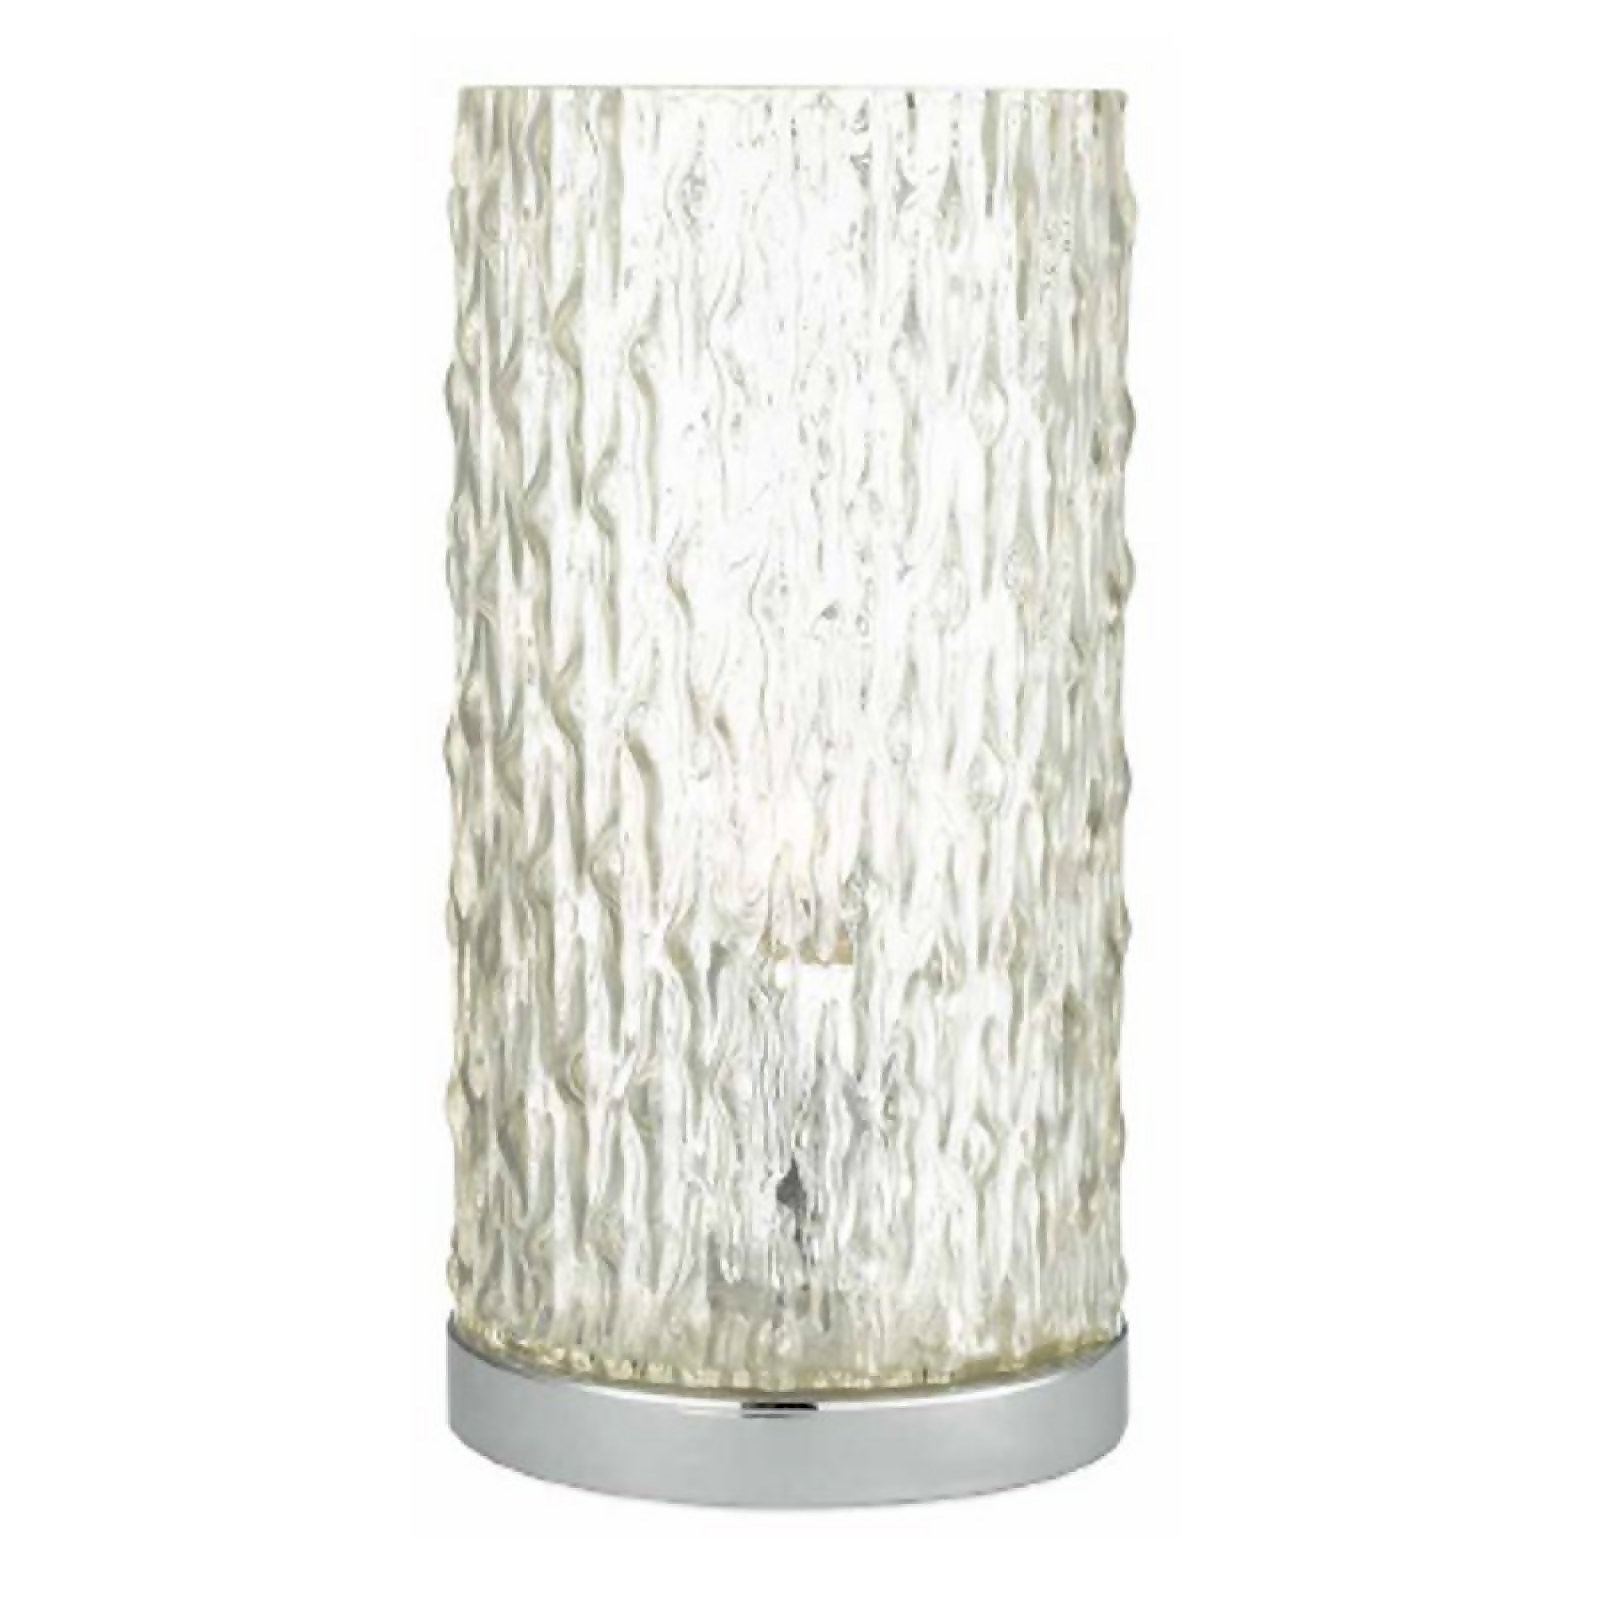 Textured Glass Table Lamp - Chrome